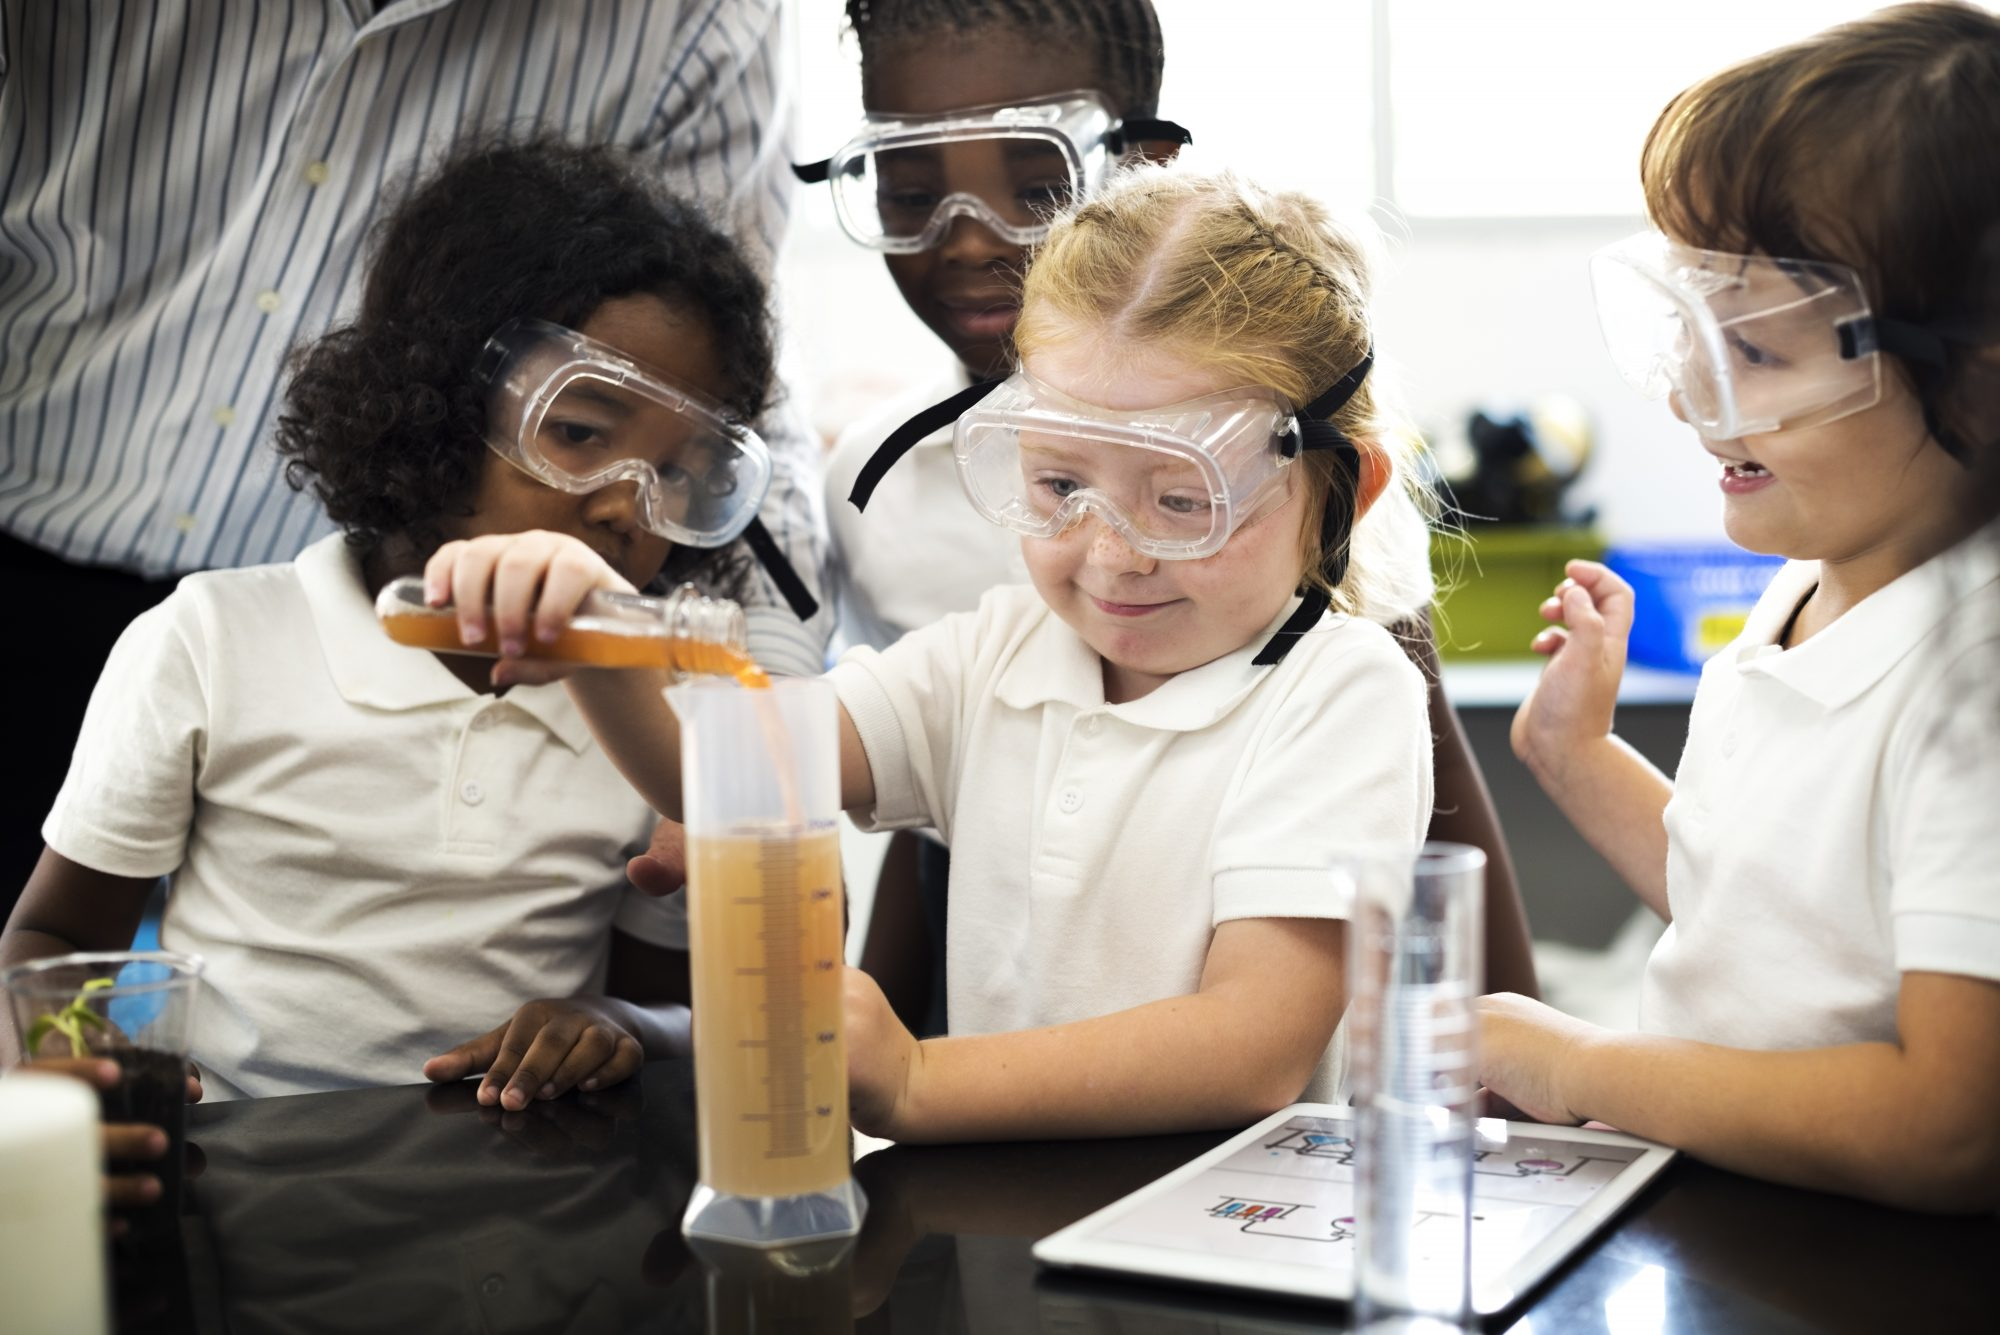 Are girls' misconceptions of STEM subjects holding them back?